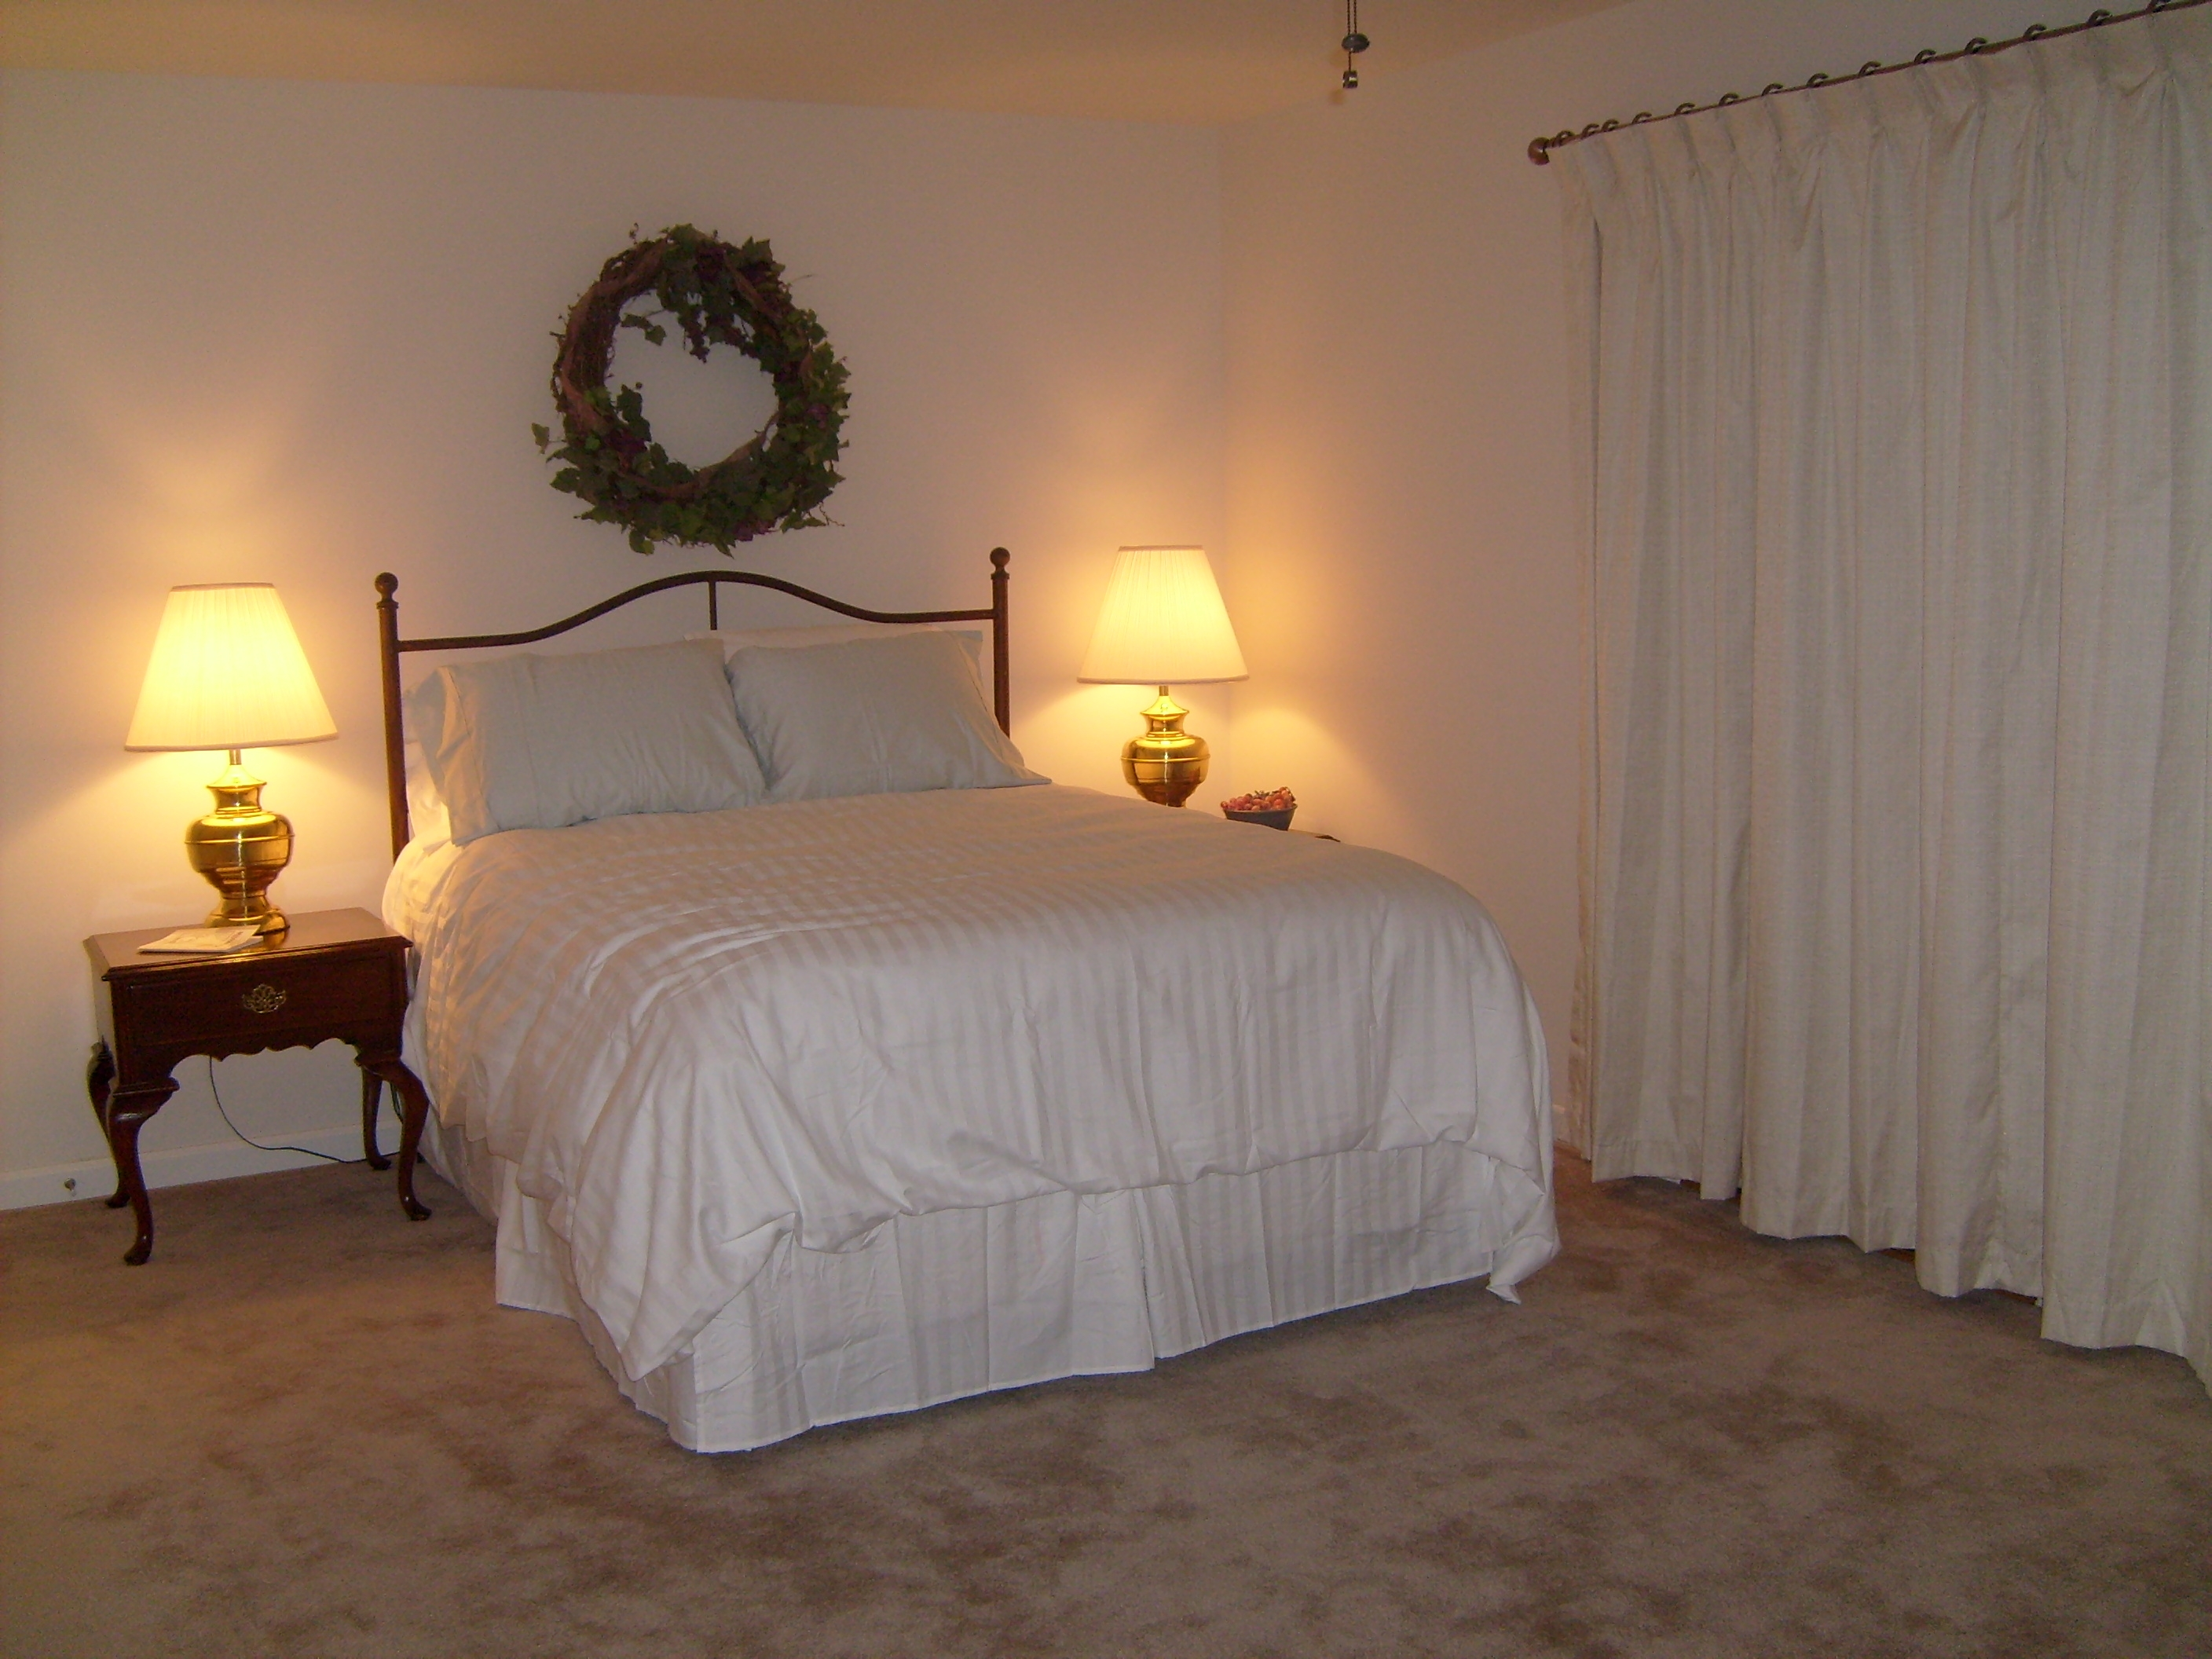 cape charles chat rooms Get easy access to 4 apartments for rent in cape charles, va on realtorcom® find the ideal cape charles apartments today.